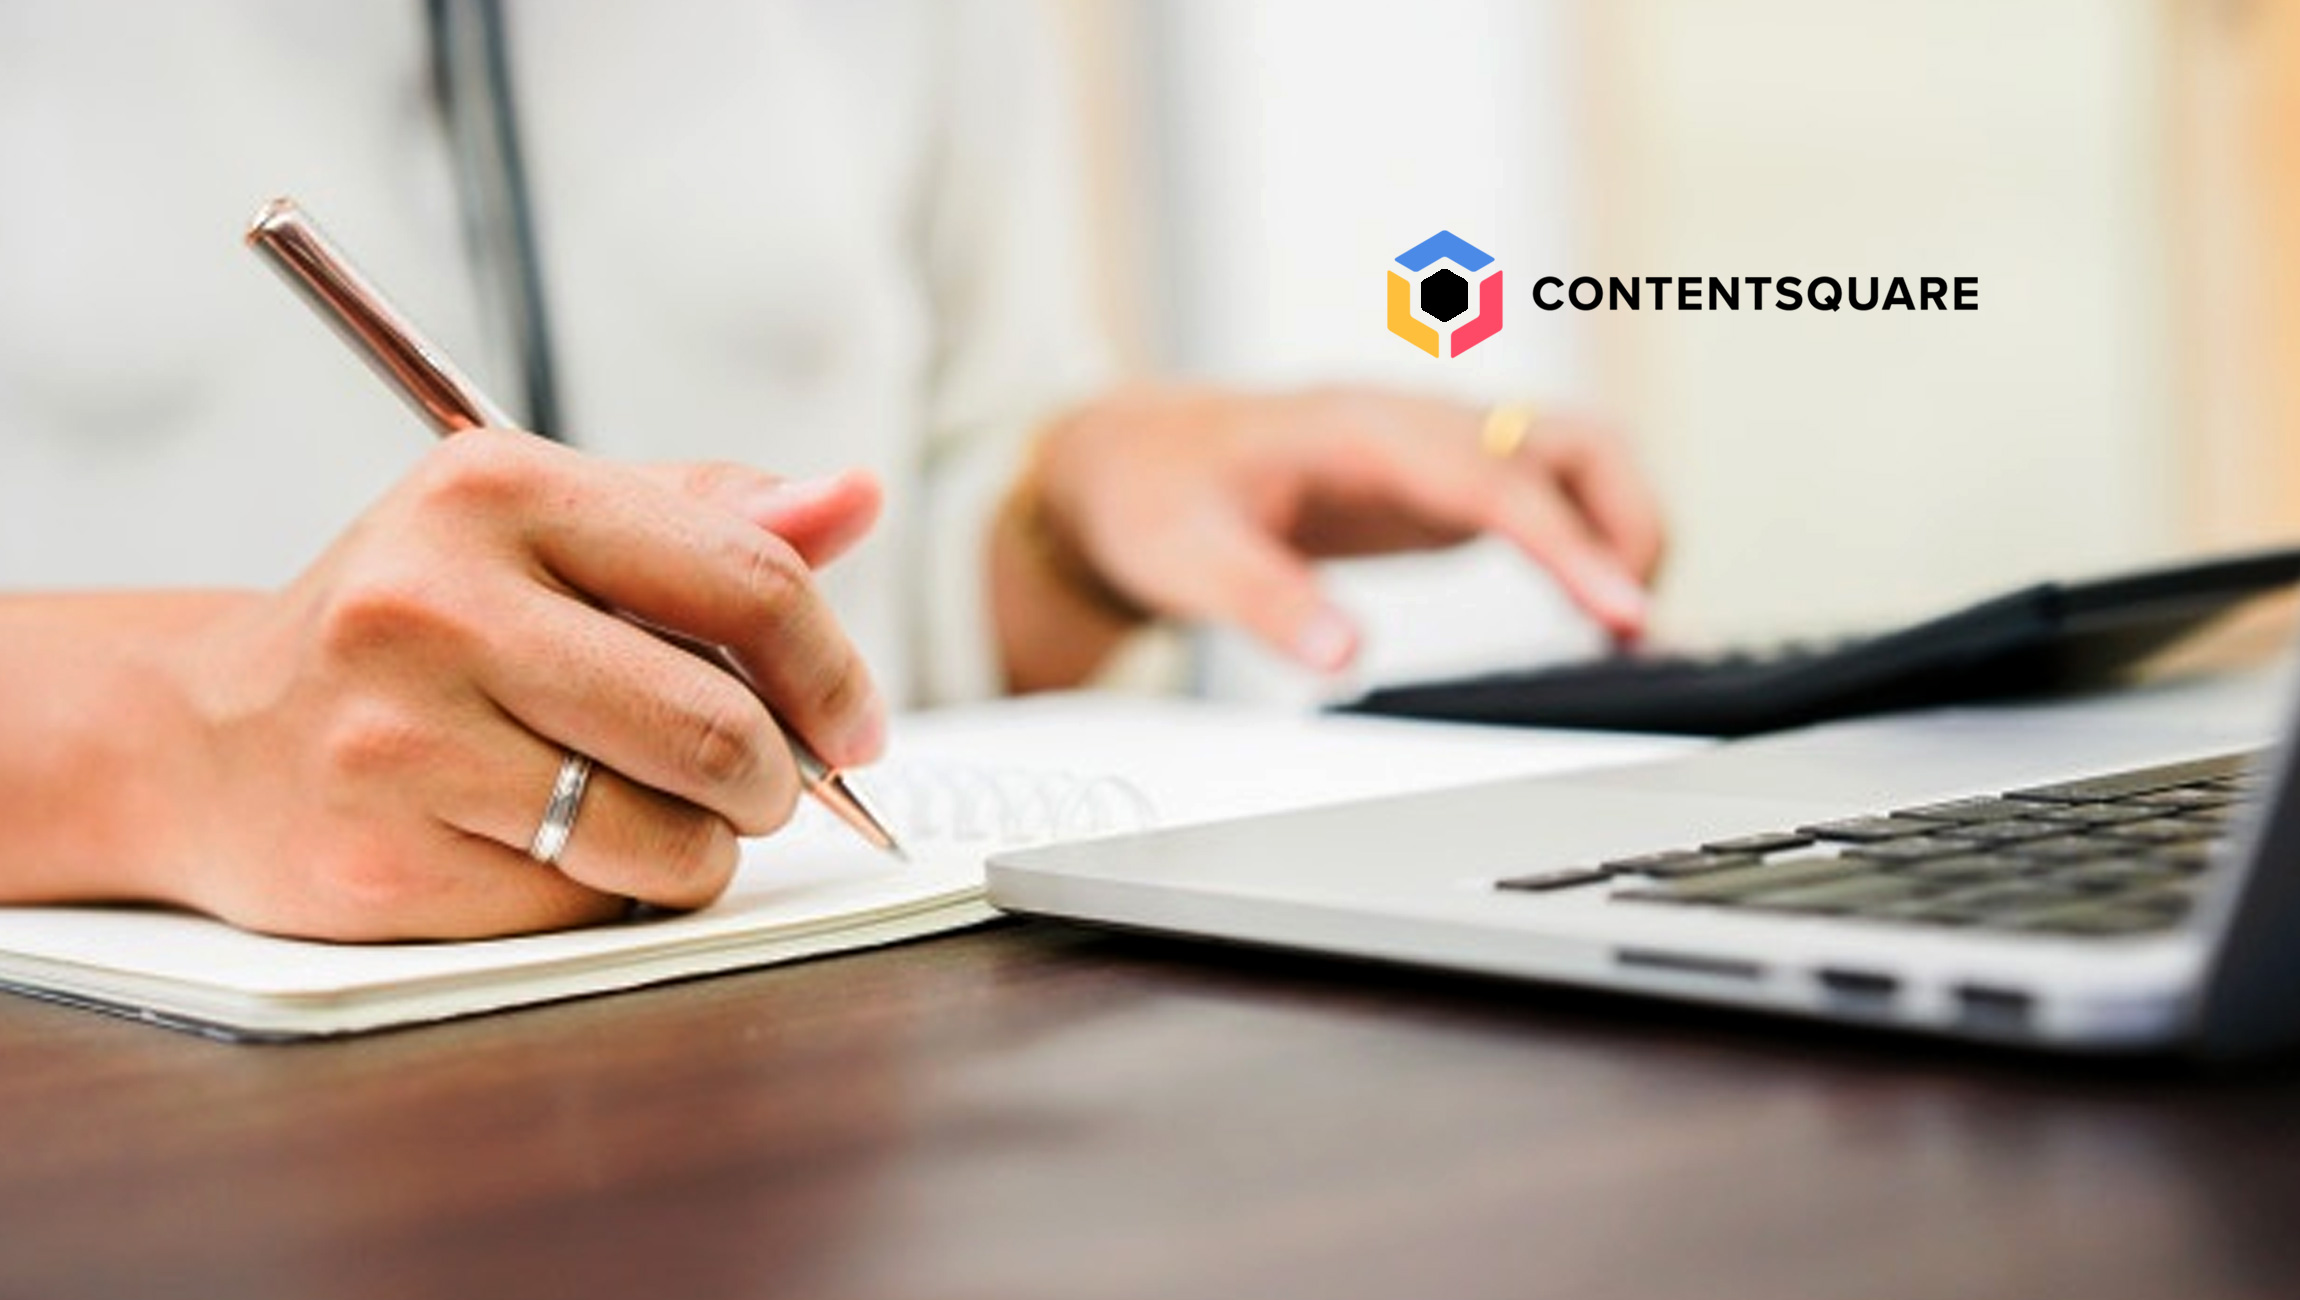 Experience Analytics Leader Contentsquare Acquires eMerchandising Solution Pricing Assistant